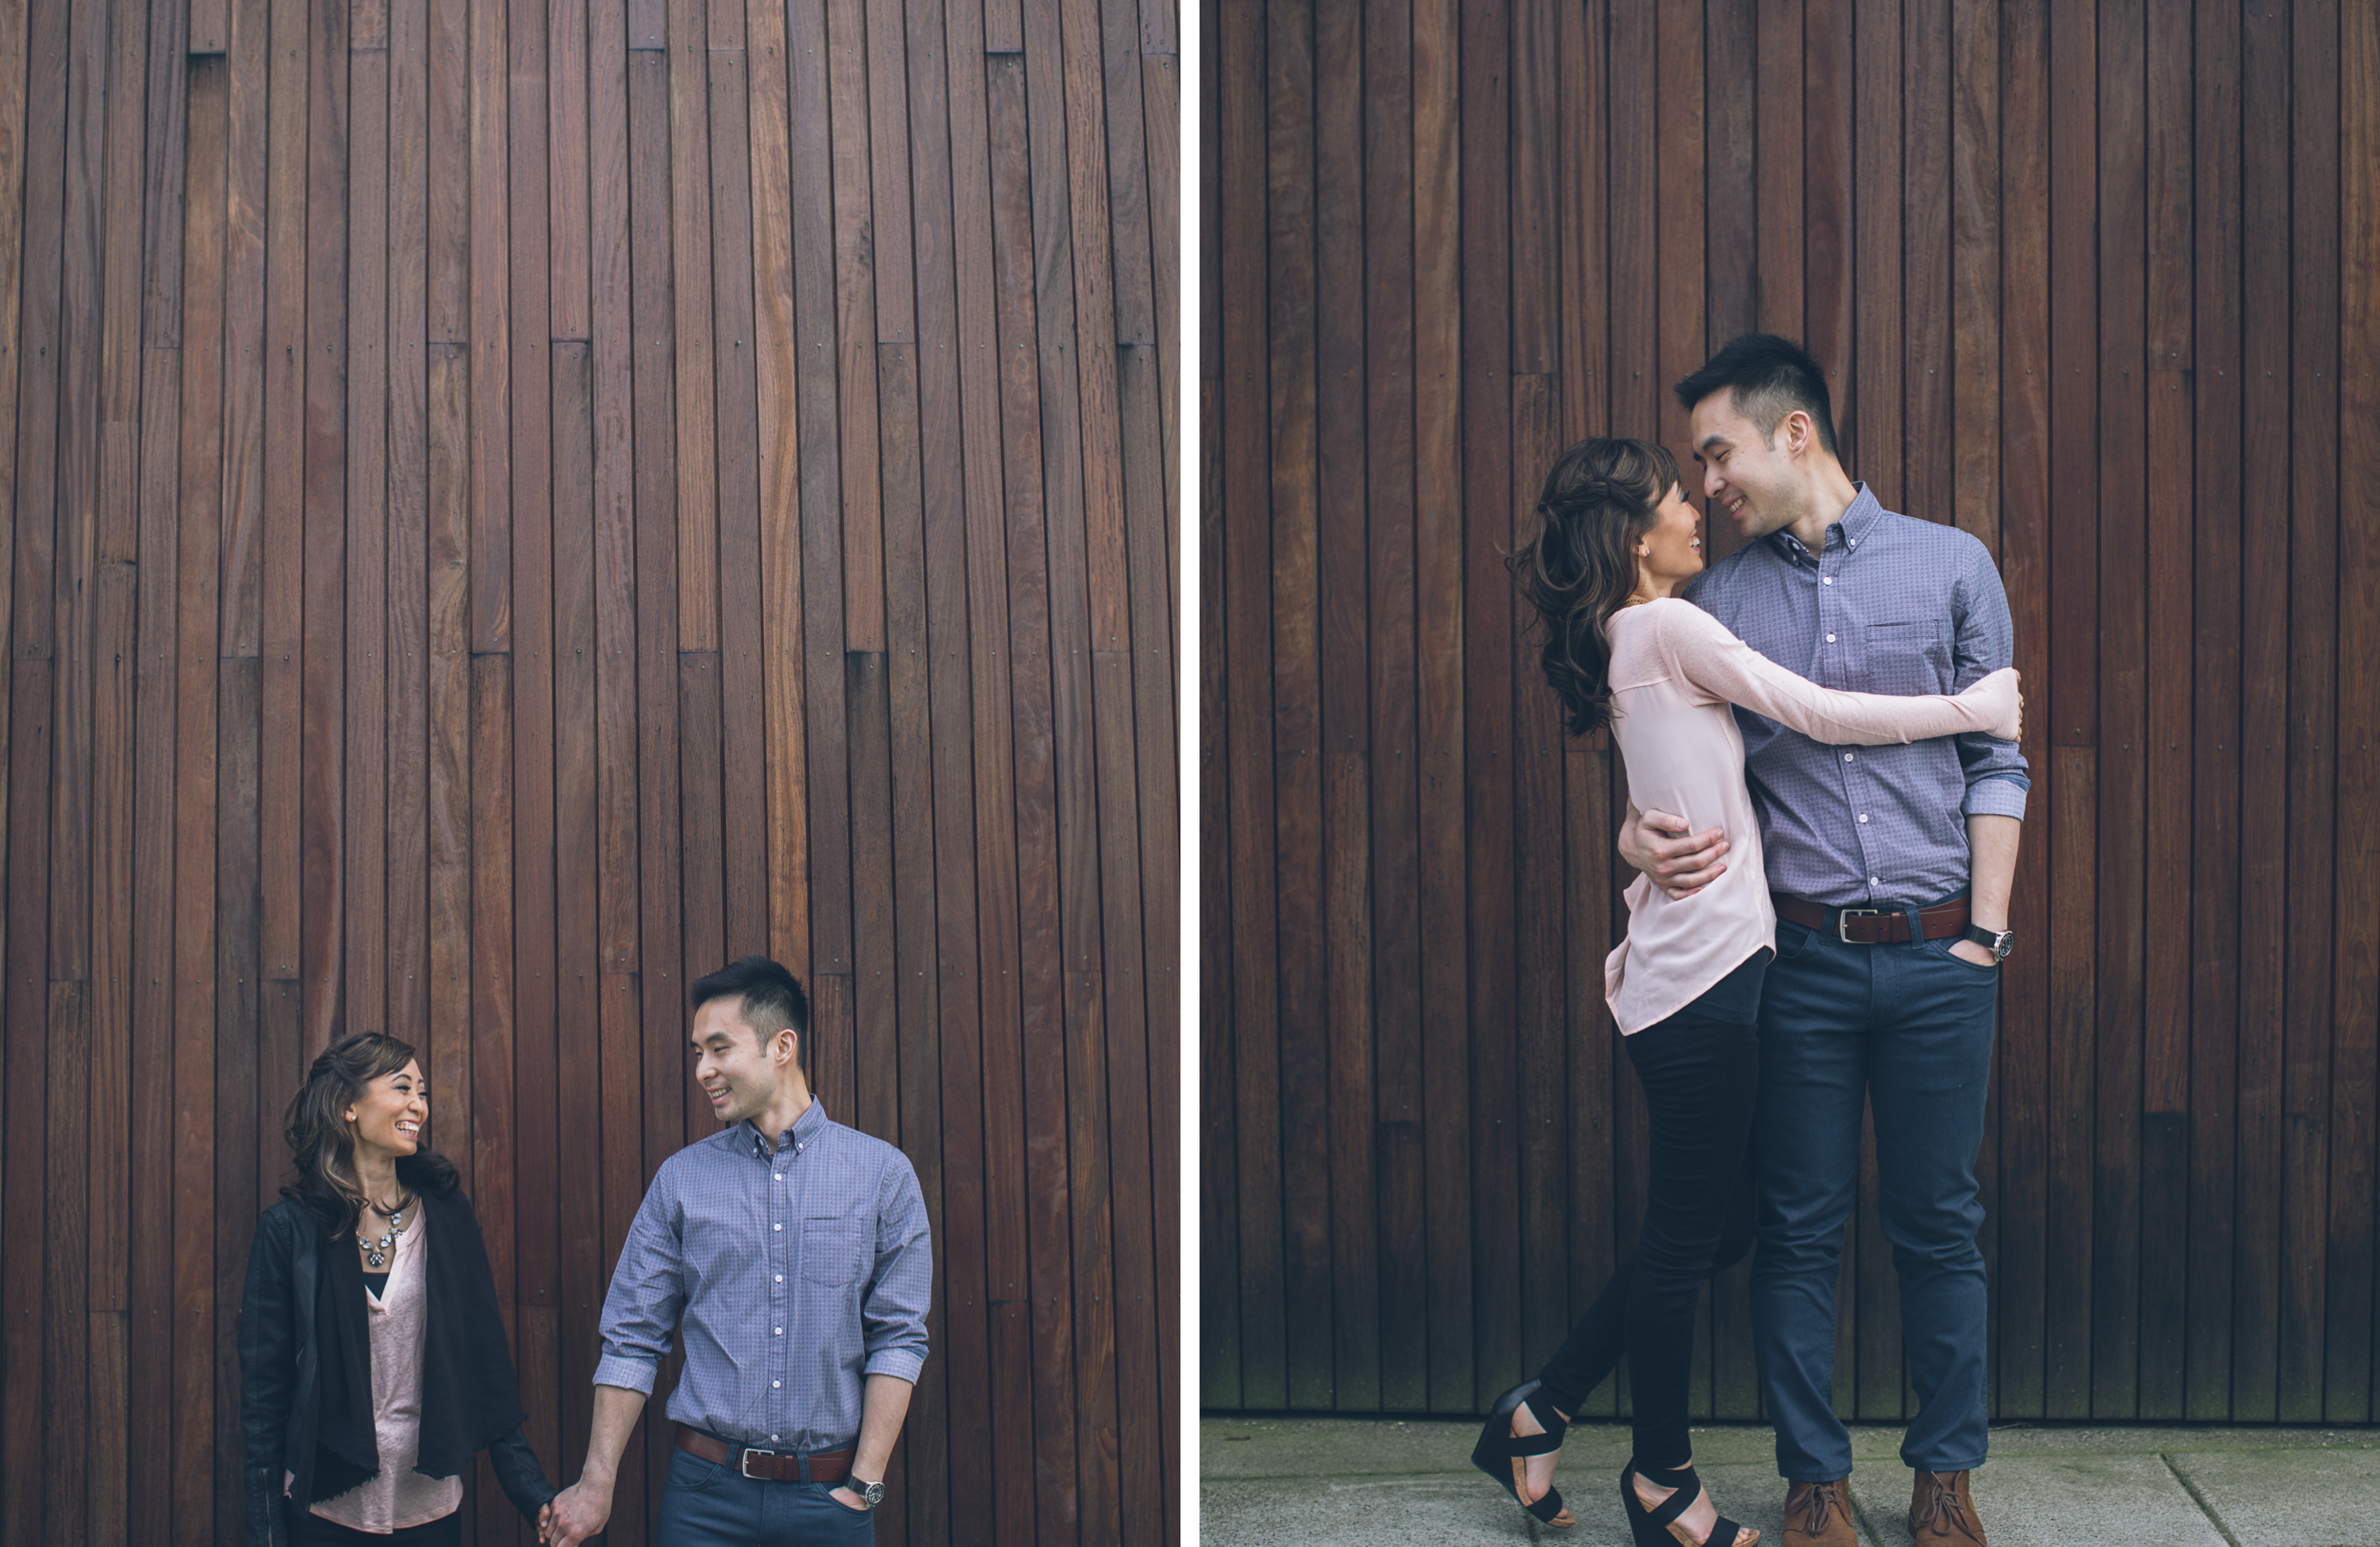 downtown portland pdx engagement photos photographers dock rooftop hawthorne bridge